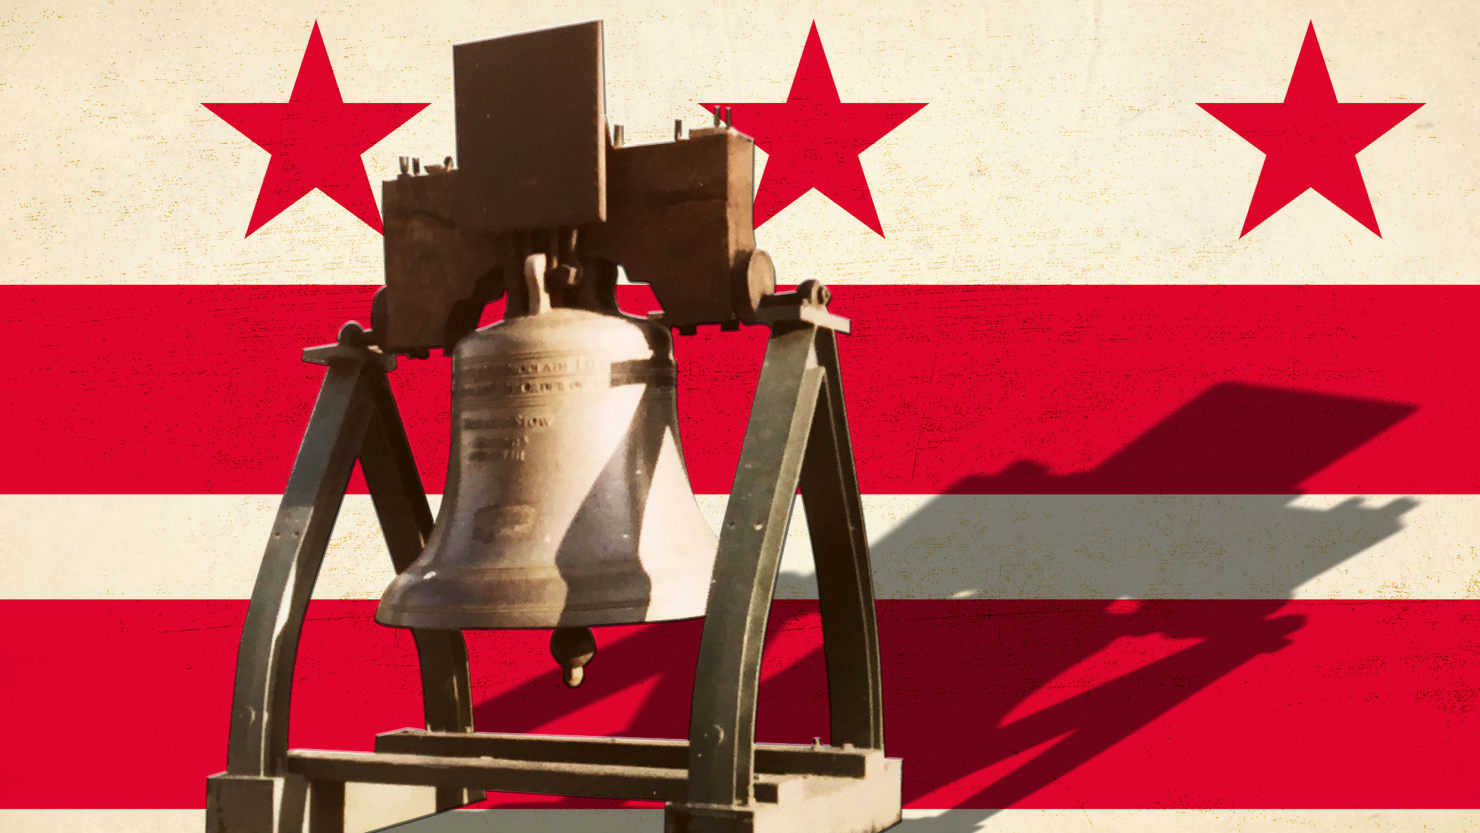 Have you seen washington dcs missing liberty bell washington dcs liberty bell has been missing for over three decades but josh gibson of the citys council remains determined to find it biocorpaavc Images